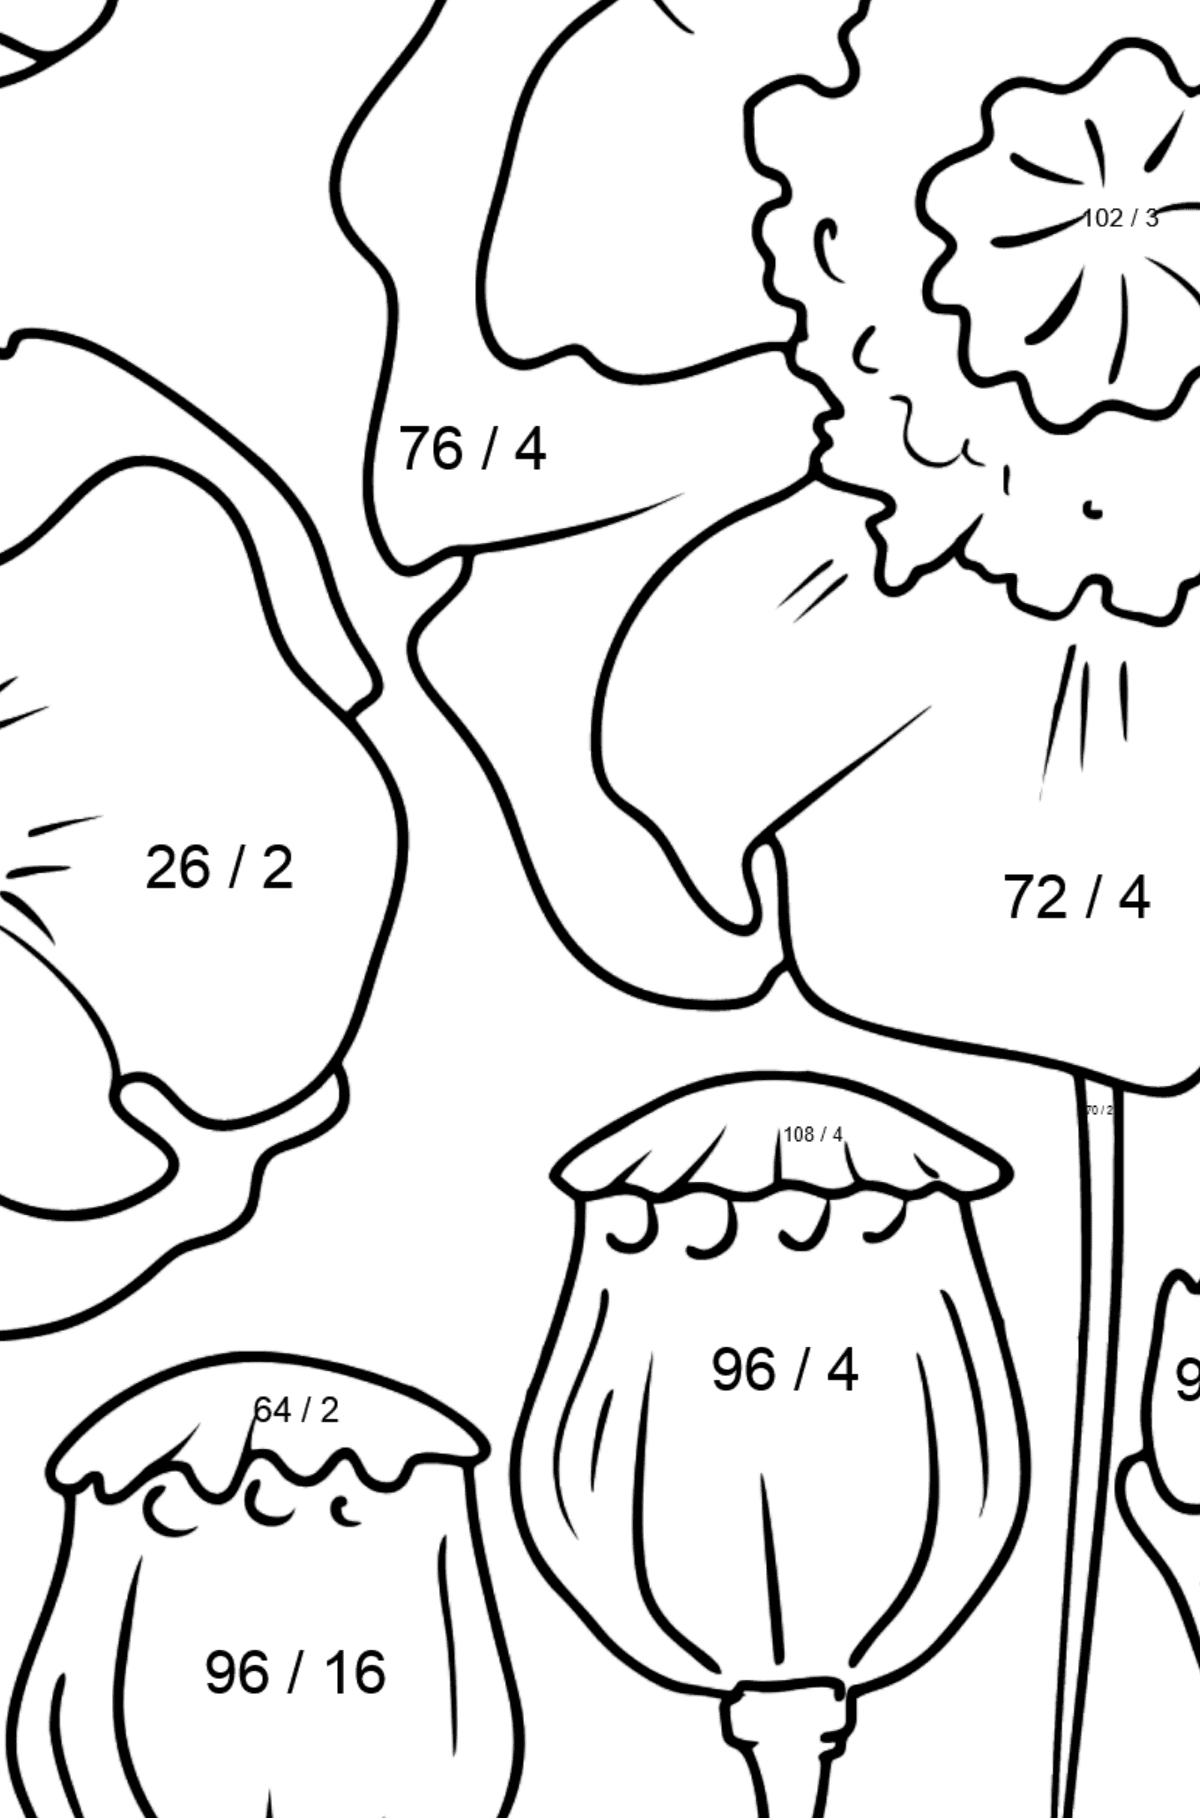 Flower Coloring Page - Poppies - Math Coloring - Division for Kids